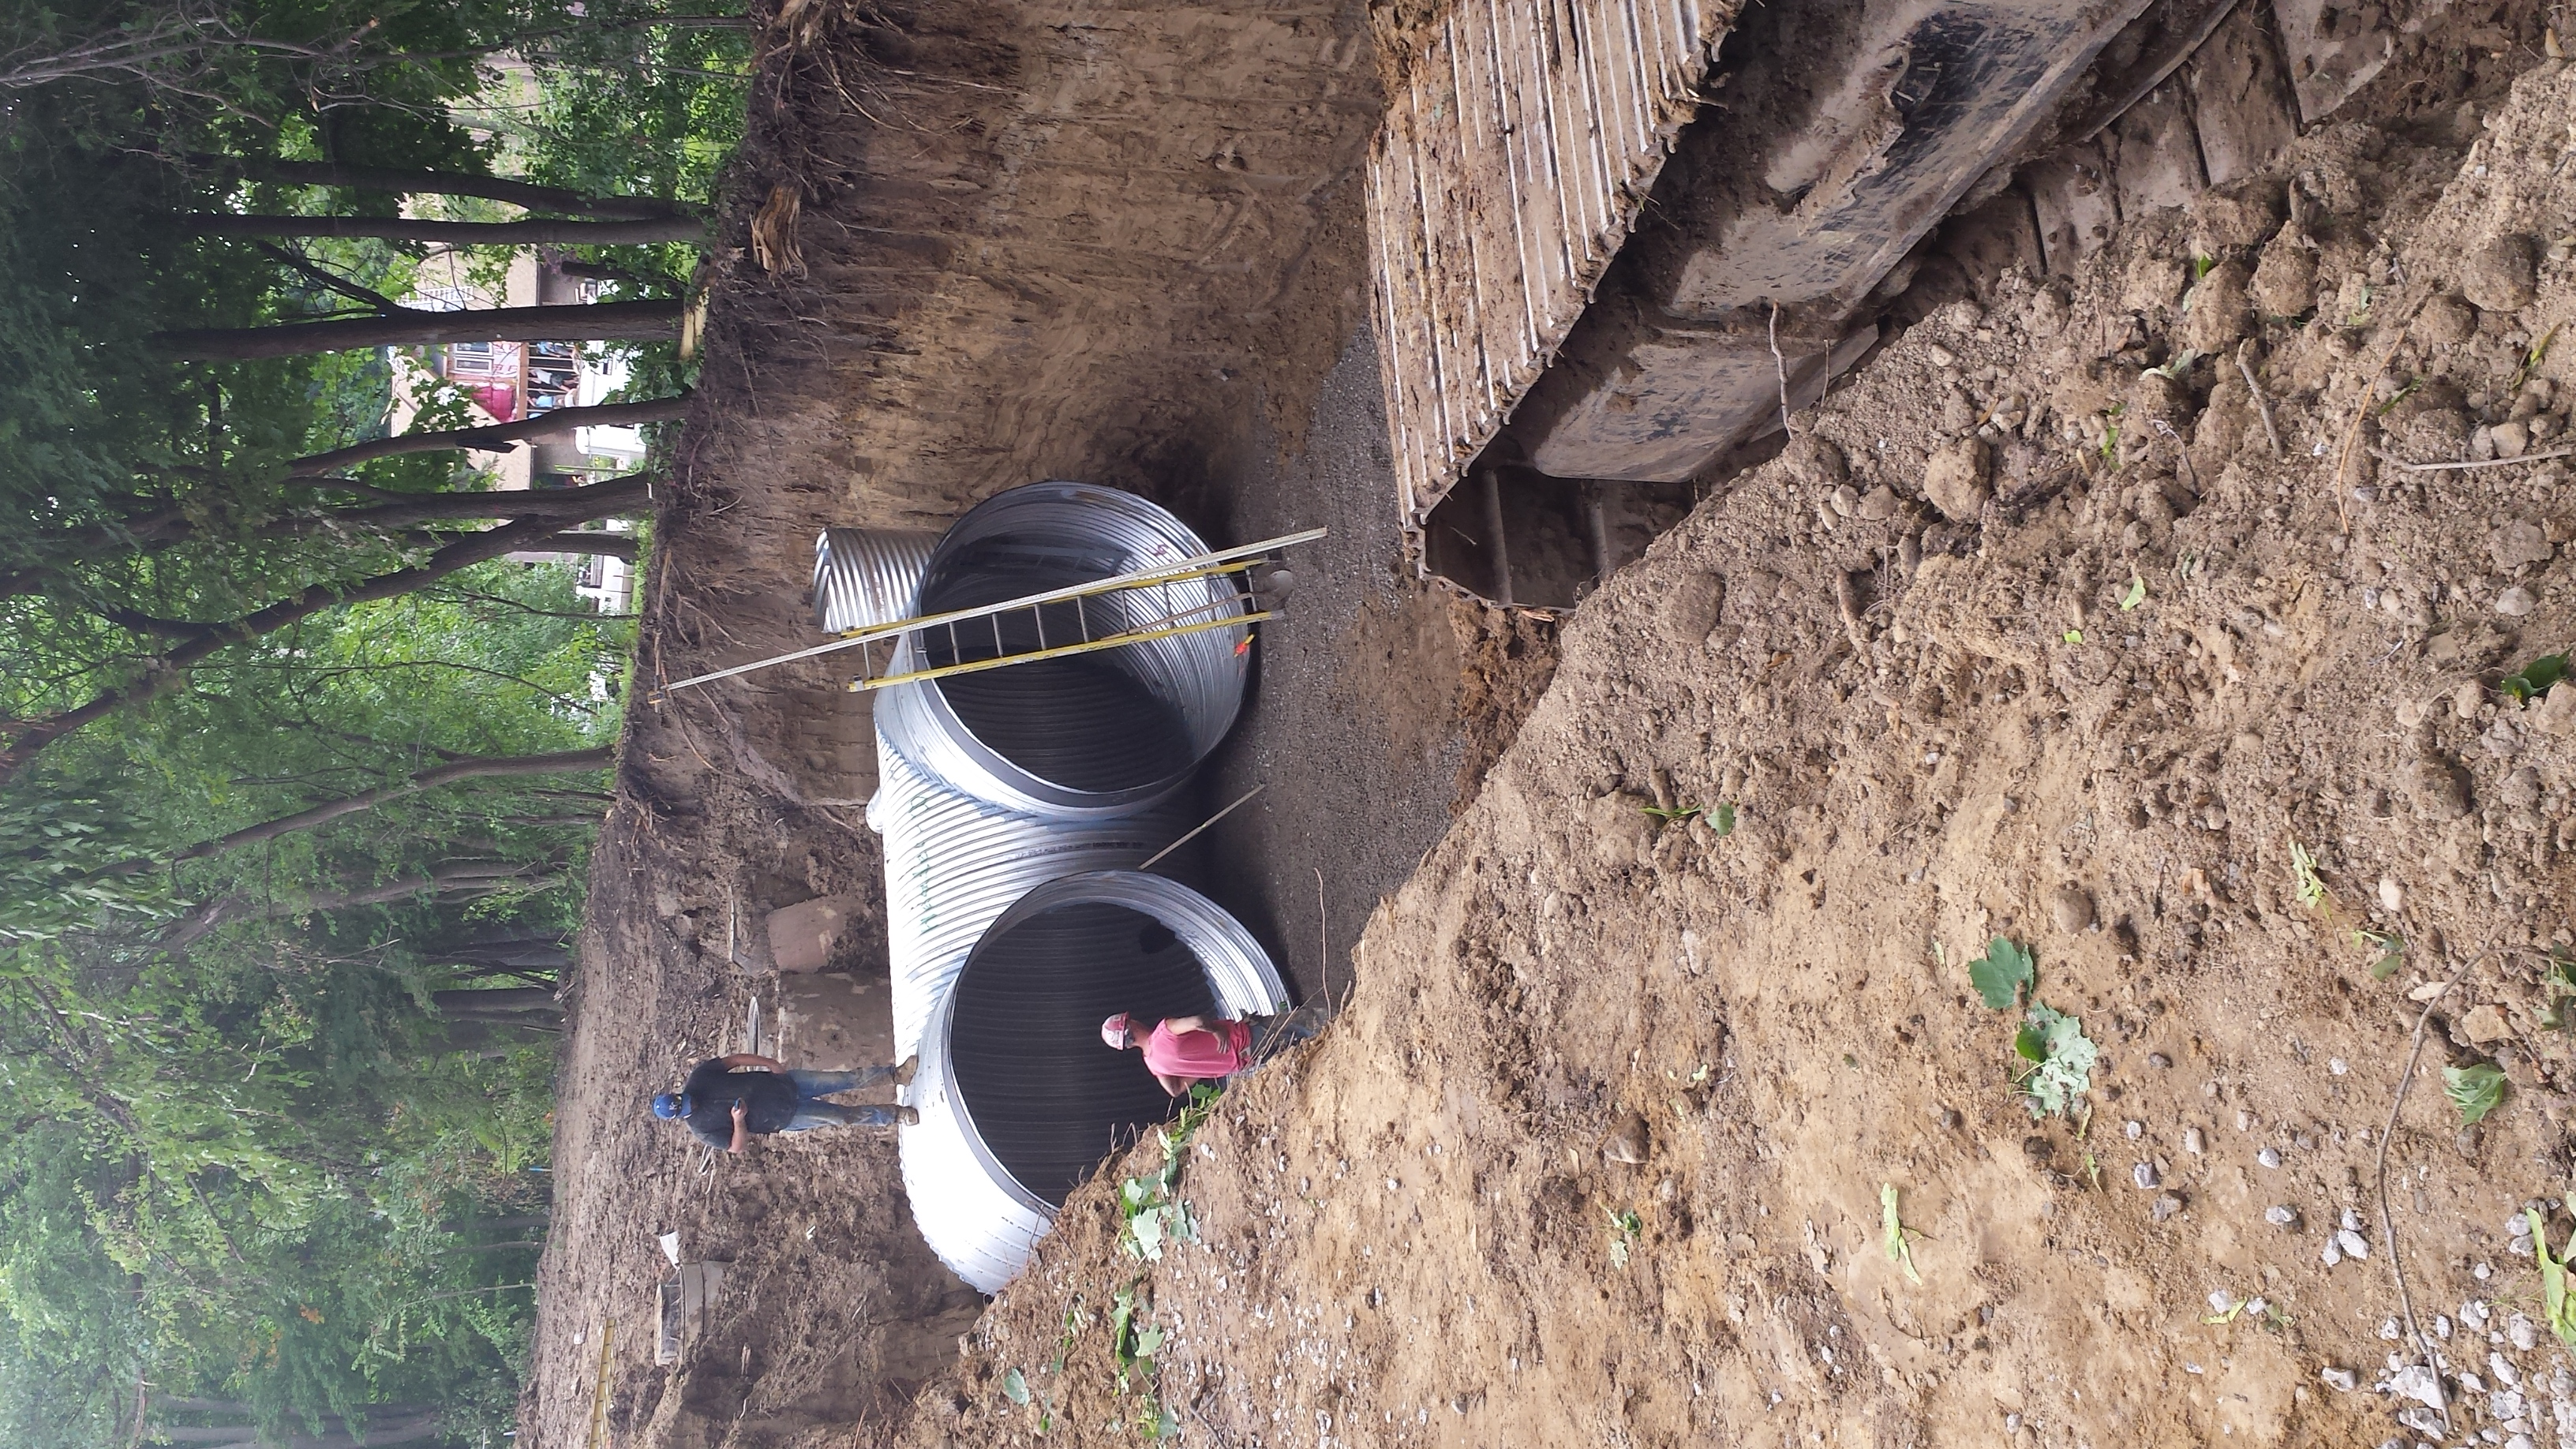 These 8' diameter pipes set below deep in the ground will hold storm water surges and slowly empty after a storm